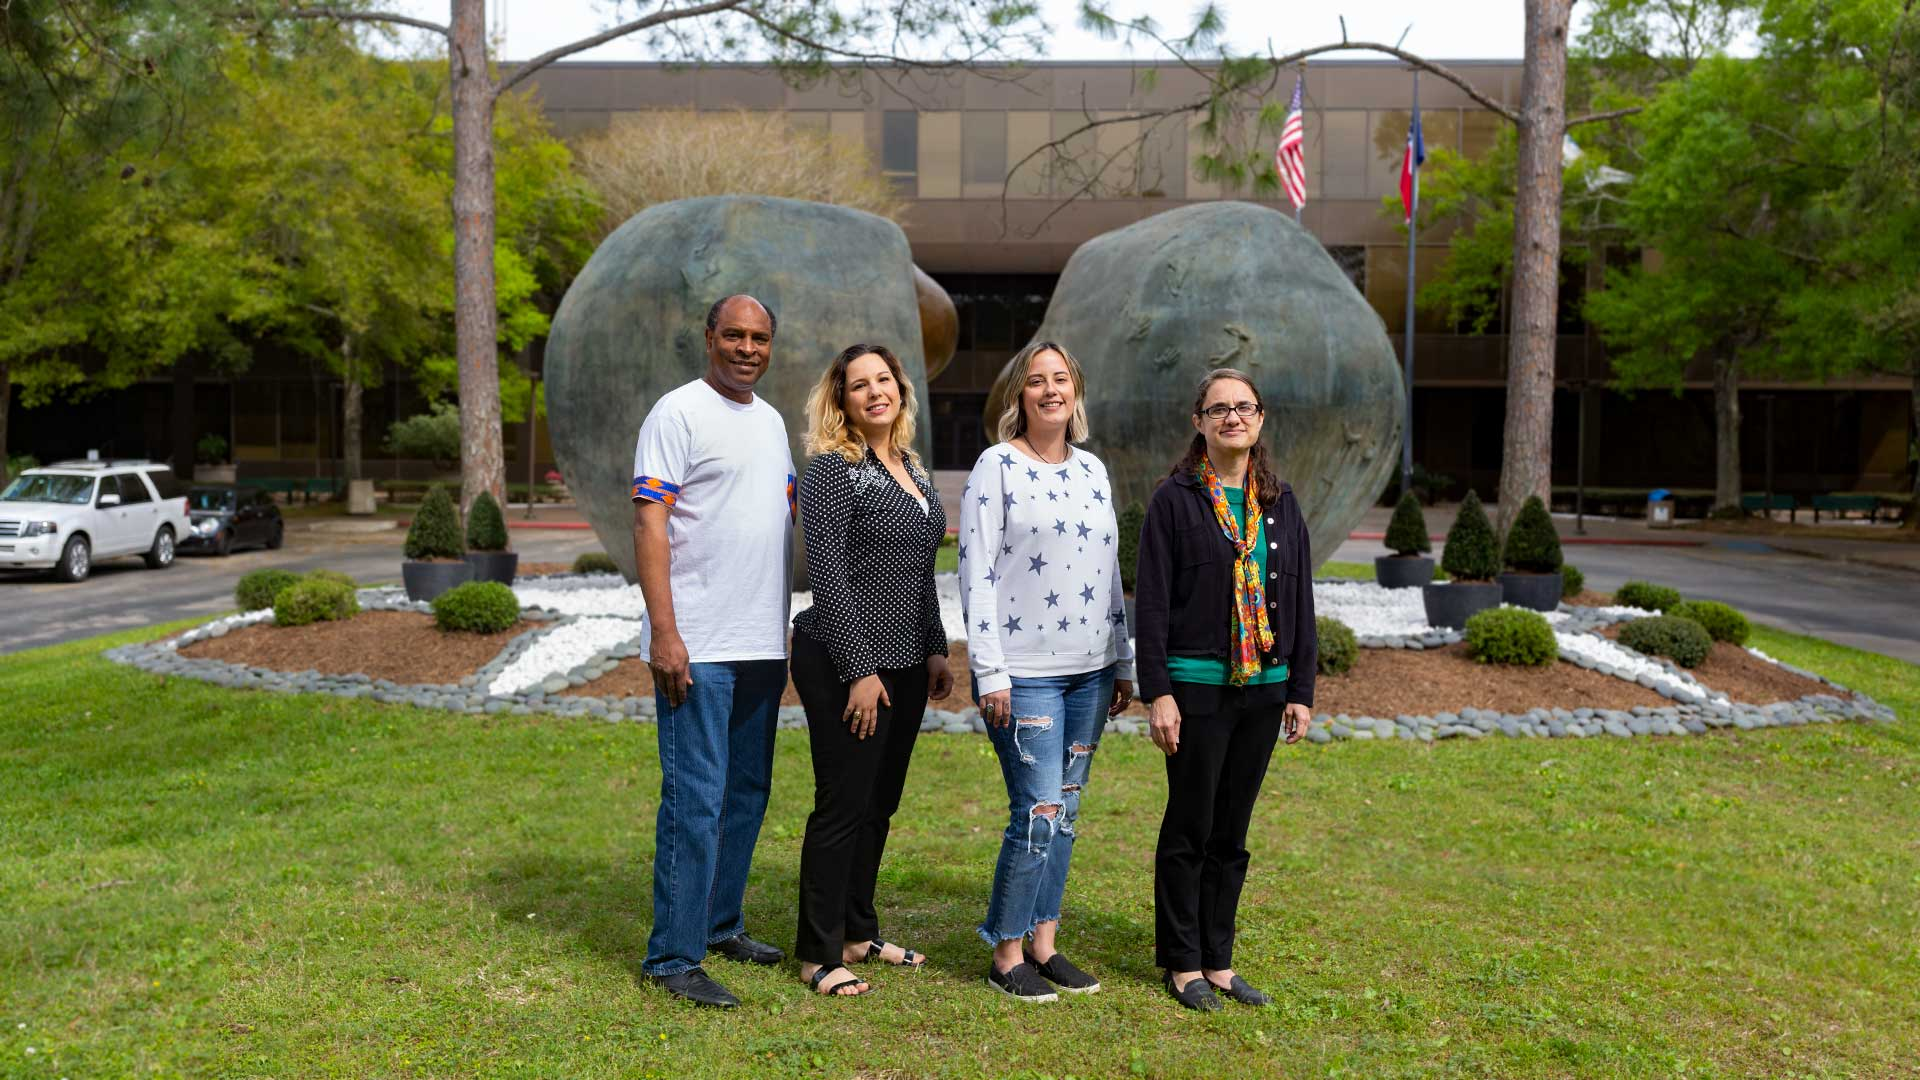 Behavioral sciences, cross-cultural studies, sociology students accepted into doctoral programs